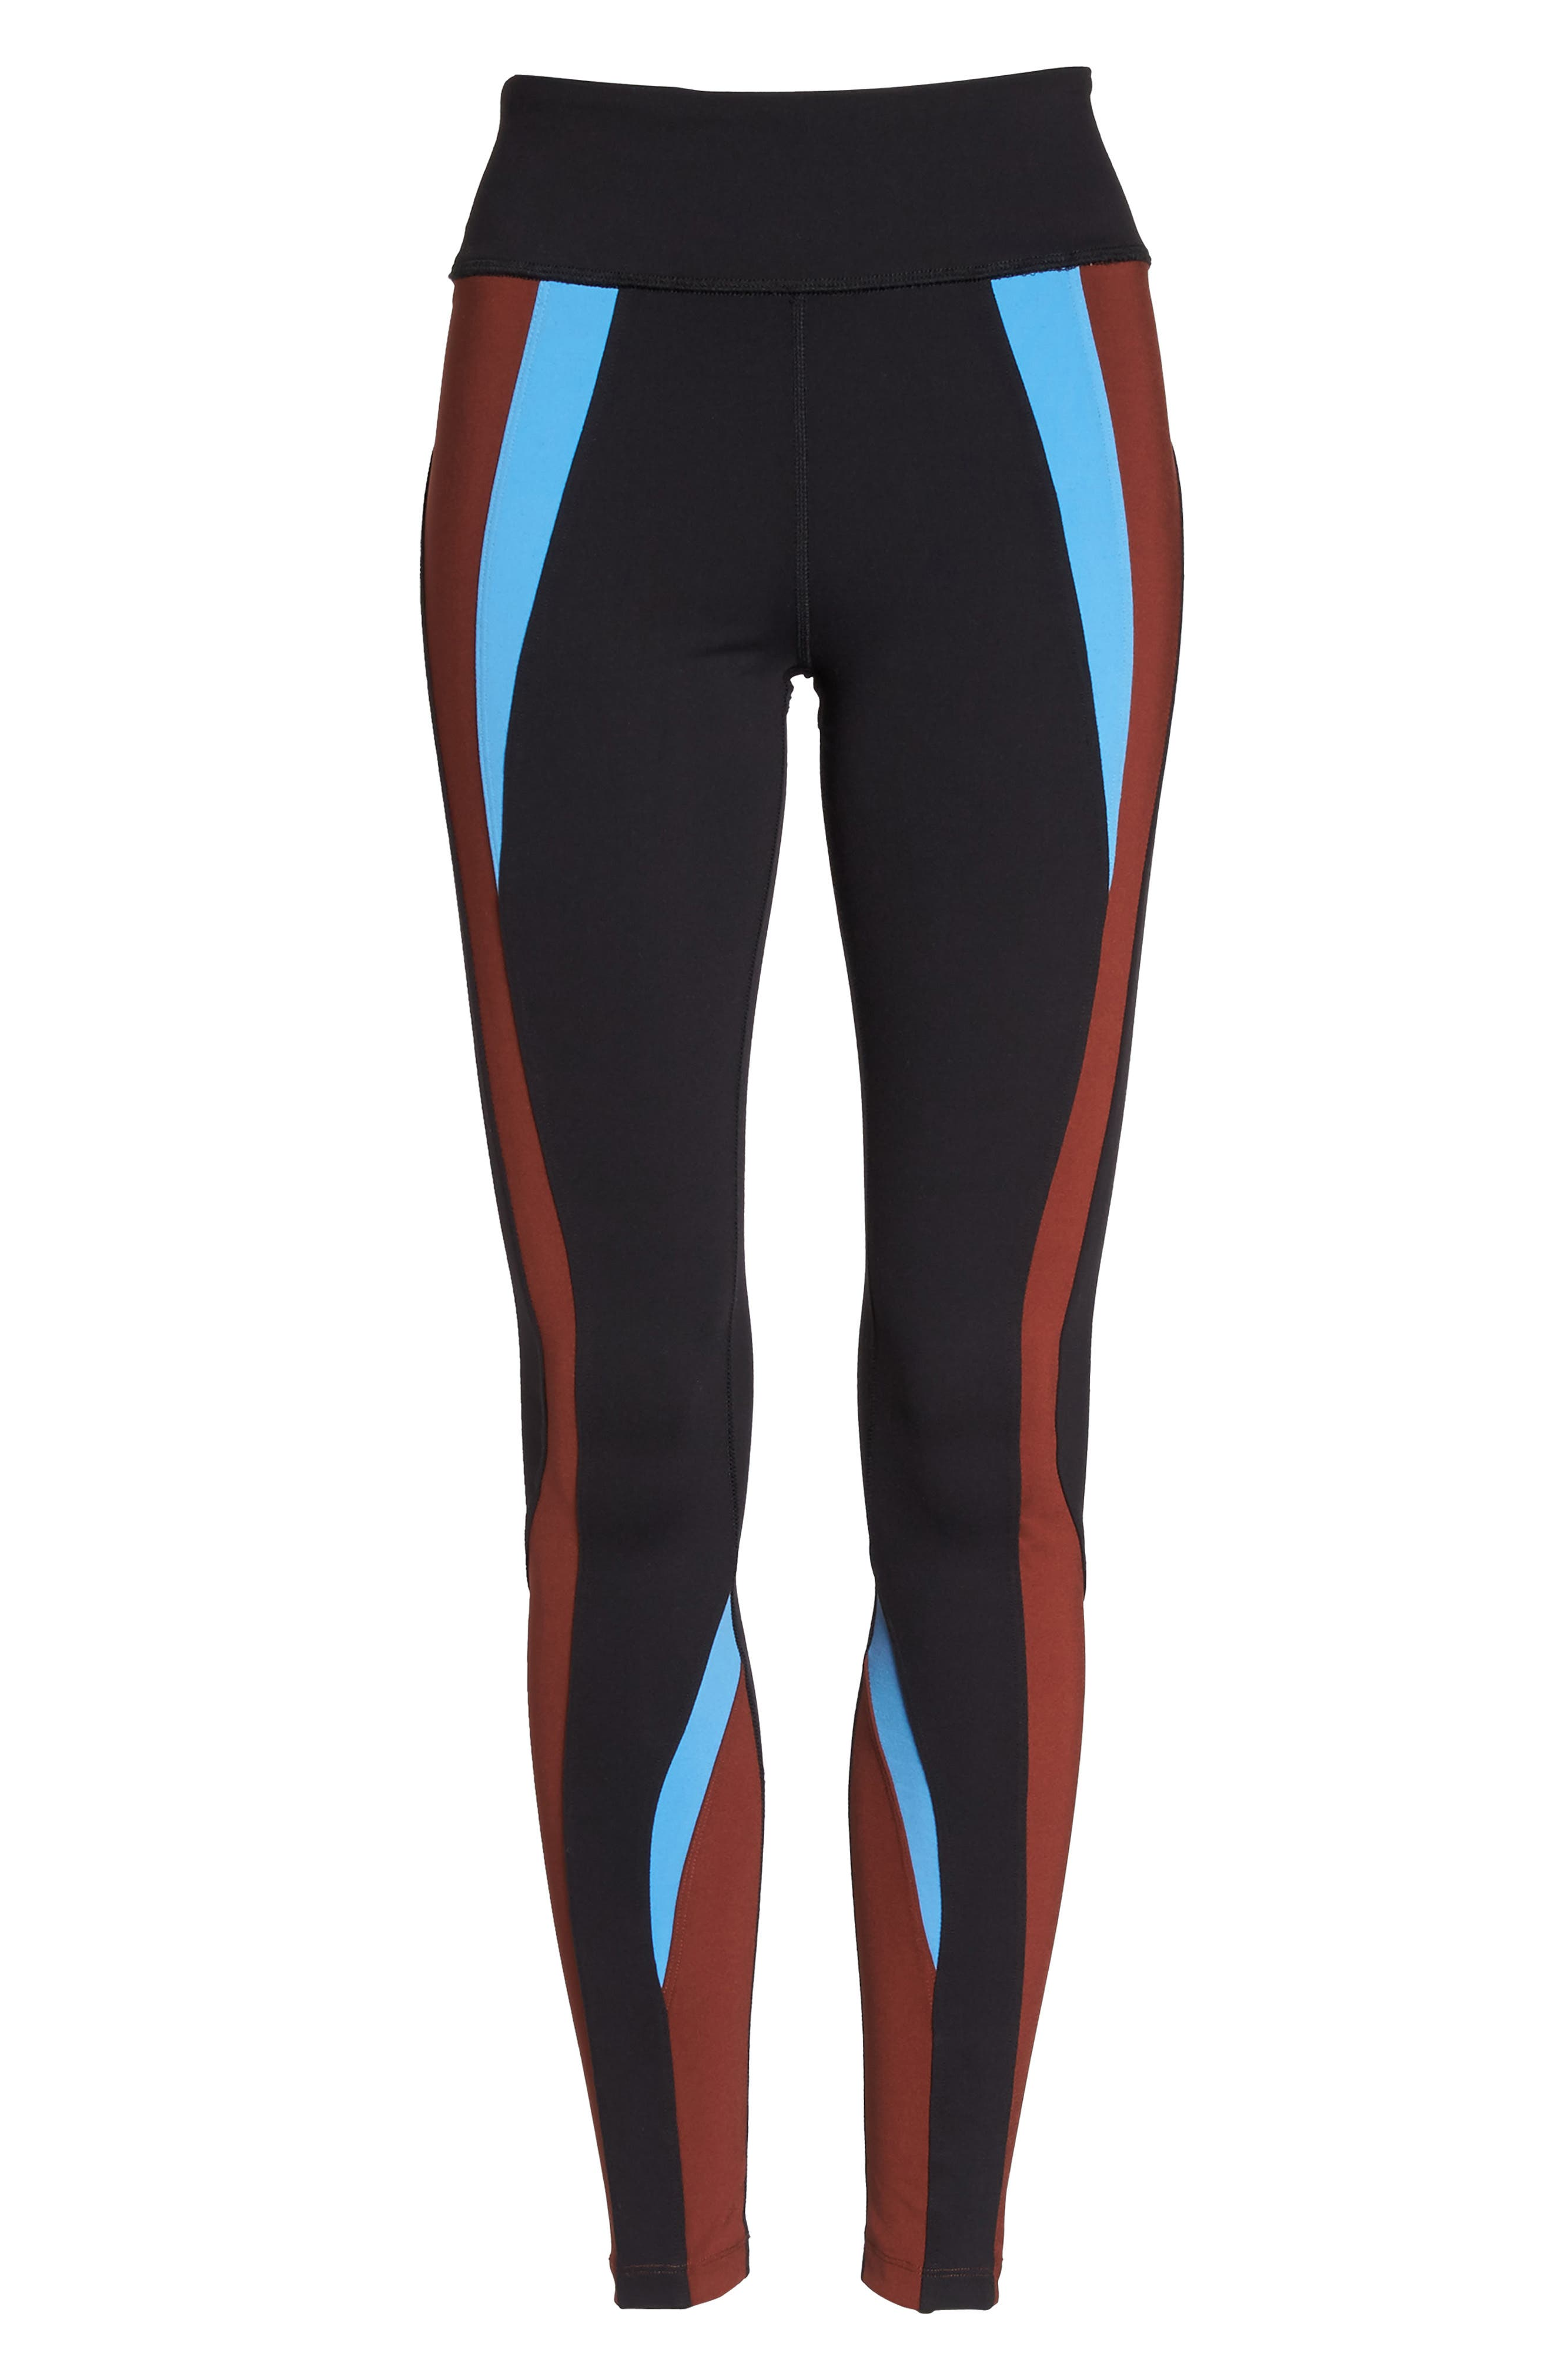 SPLITS59,                             Force Ankle Tights,                             Alternate thumbnail 7, color,                             001